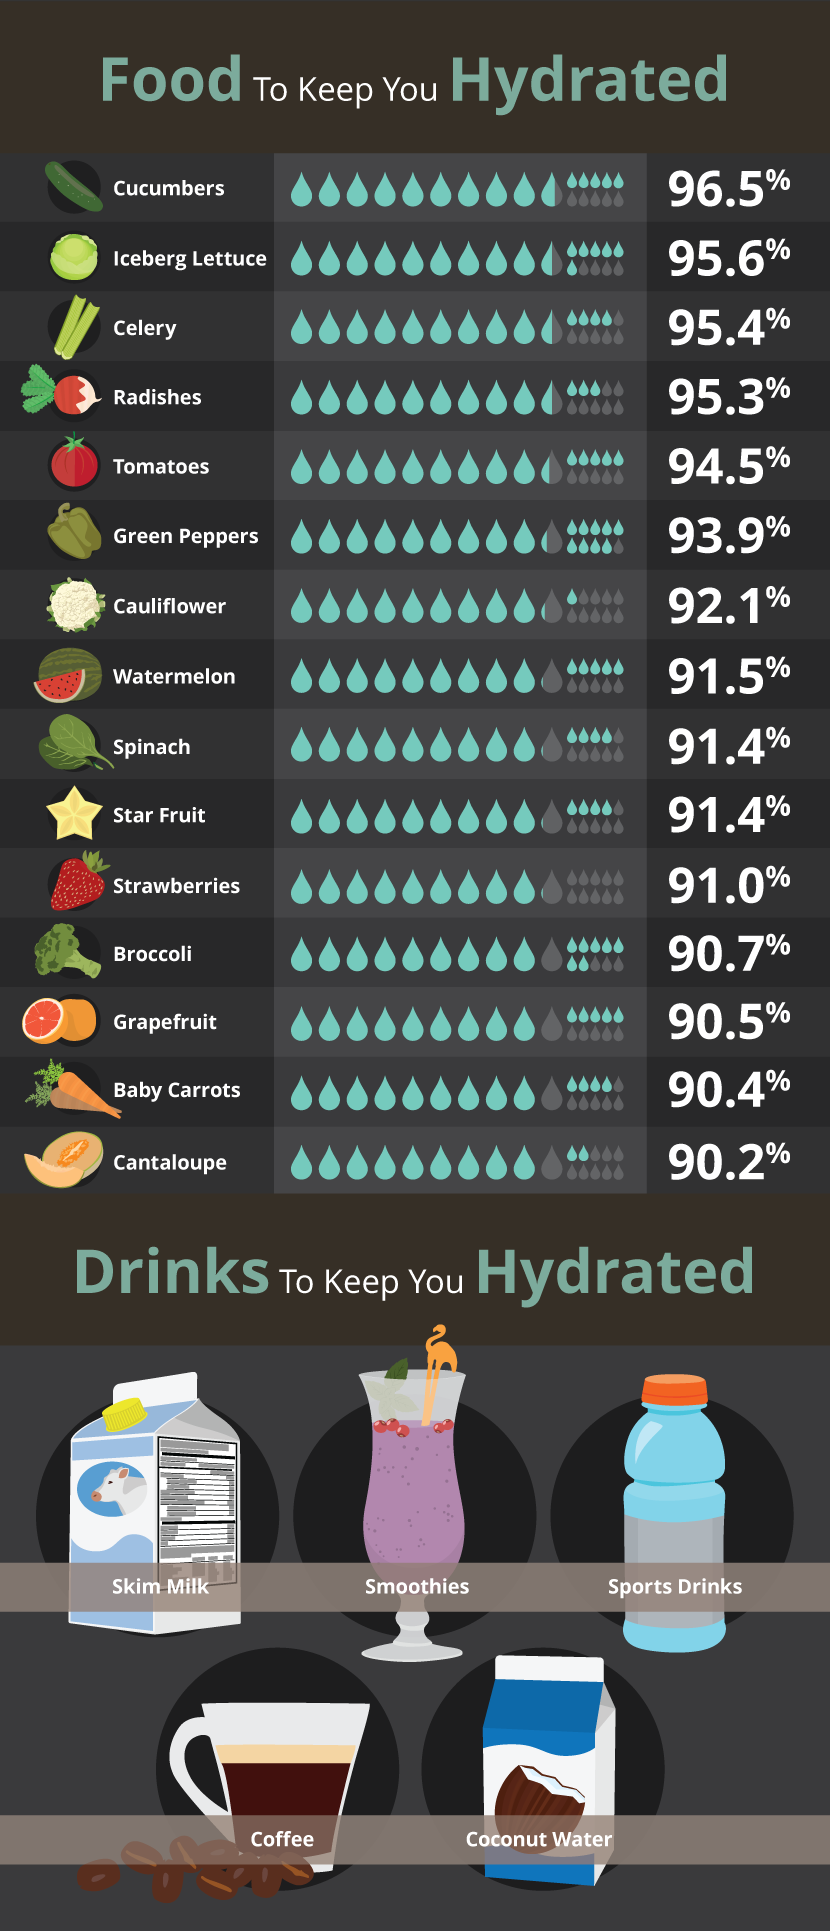 Food and Drink to Keep You Hydrated - Toilet Talk